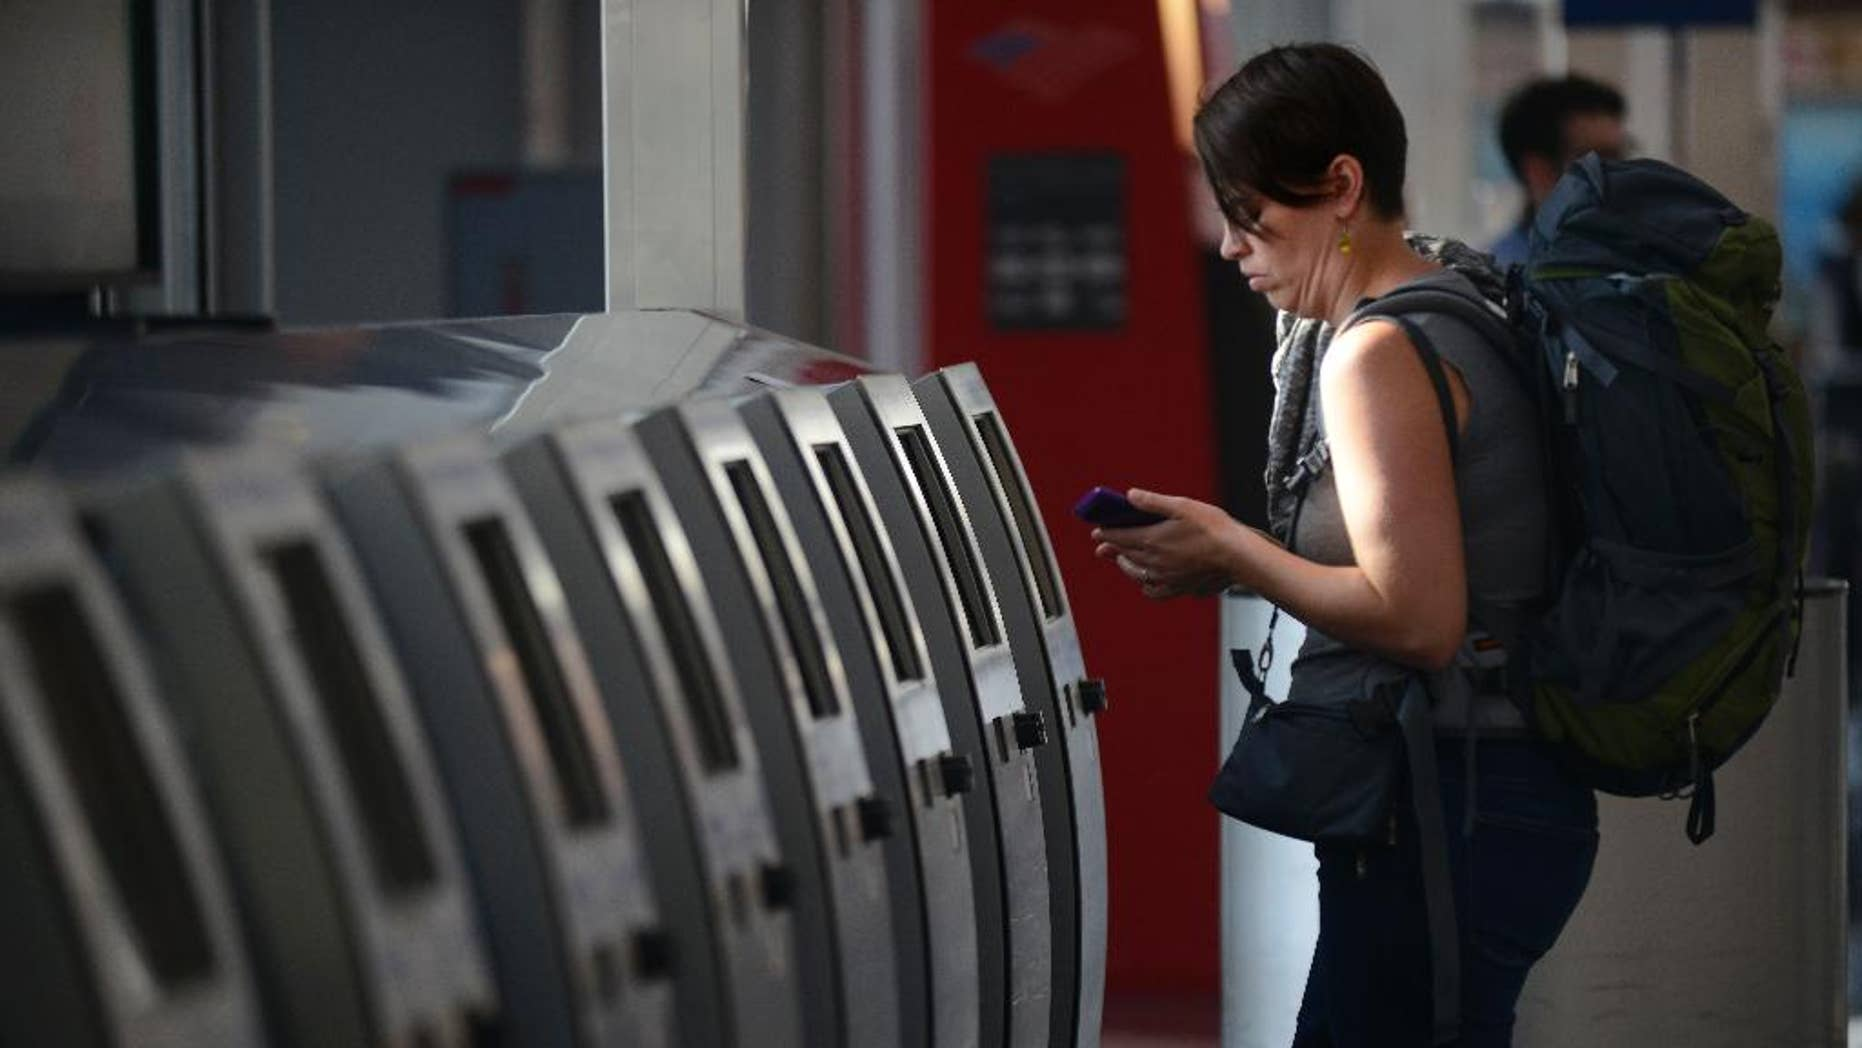 Breanne Eging checks on her flight to Greenville, South Carolina at O'Hare International Airport in Chicago, Friday, Sept. 26, 2014. All flights in and out of Chicago's two airports were halted Friday after a fire at a suburban air traffic control facility sent delays and cancellations rippling through the U.S. air travel network. Authorities said the blaze was intentionally set by a contract employee of the Federal Aviation Administration and had no ties to terrorism.   (AP Photo/Paul Beaty)